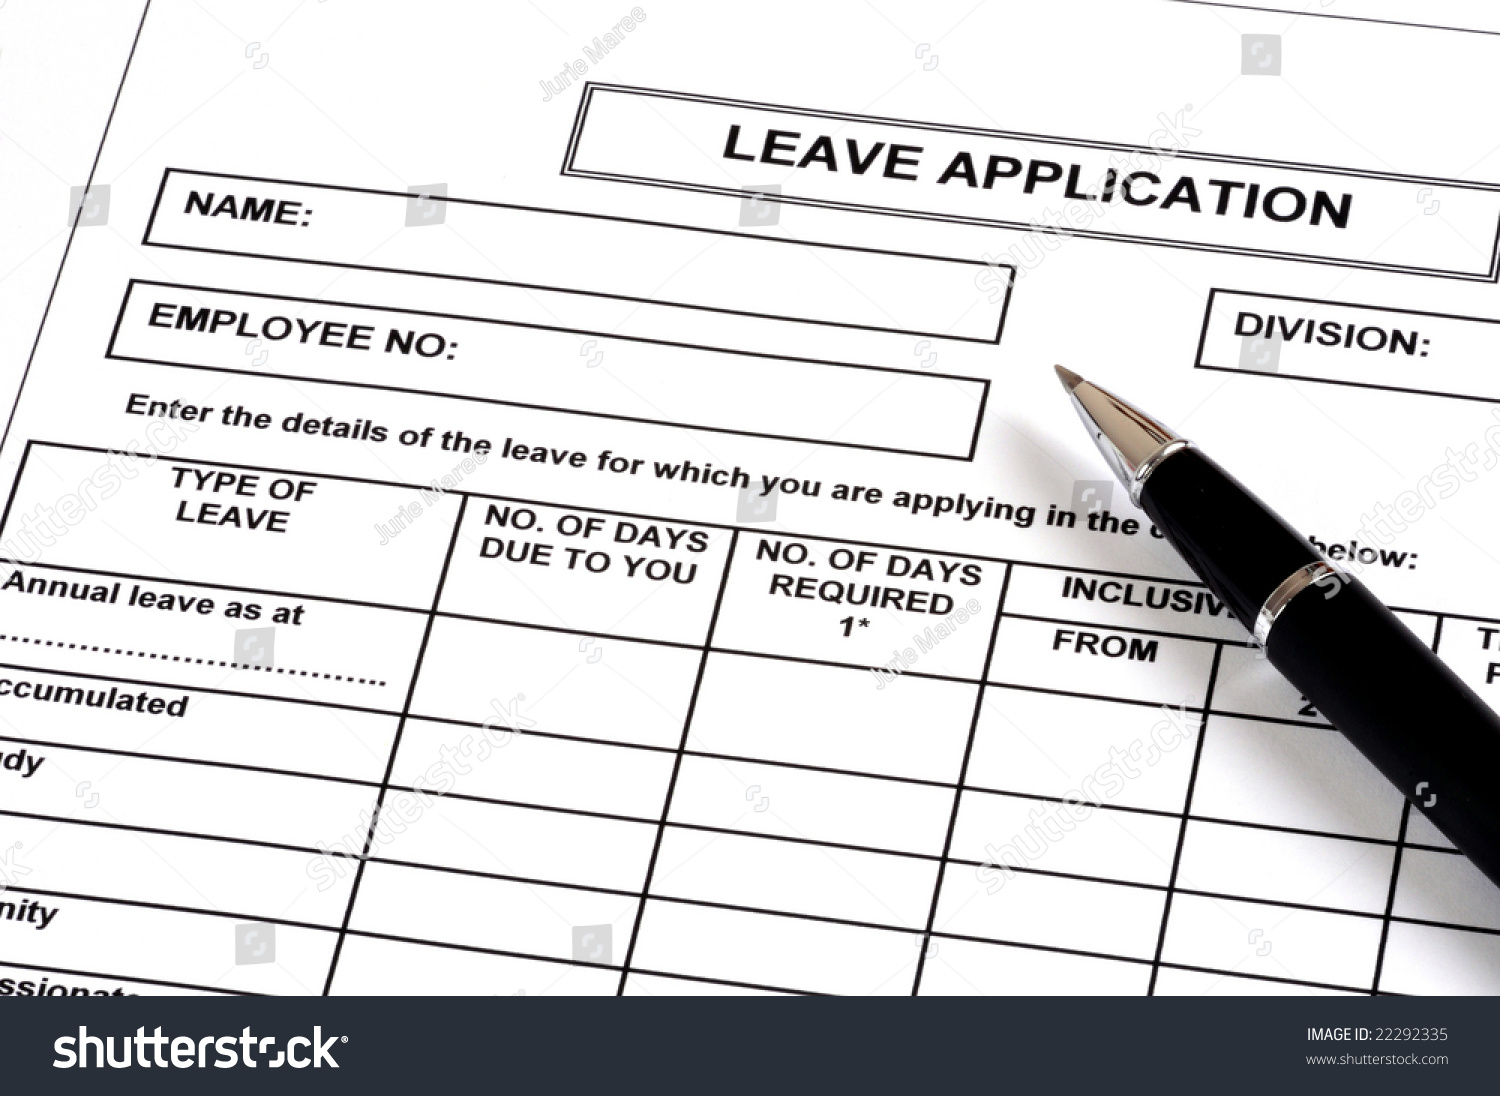 Leave Application Photo 22292335 Shutterstock – Leave Application